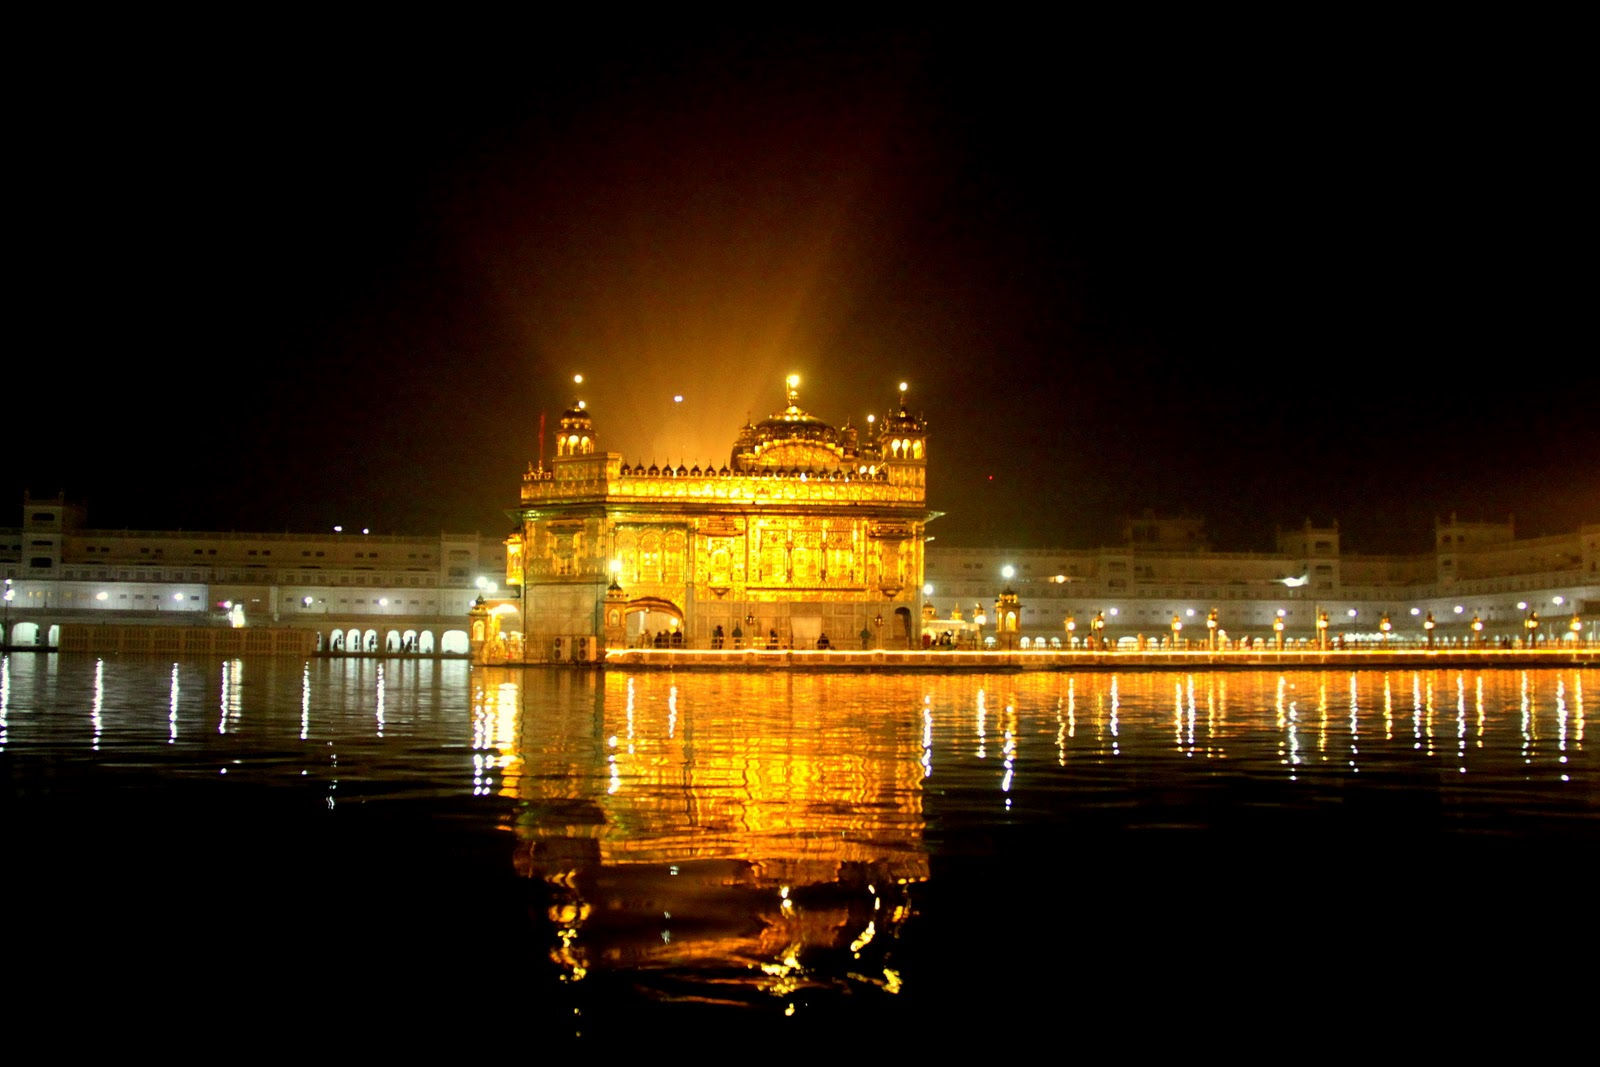 The Golden Temple Amritsar, Harmandir Sahib or Darbar Sahib or Gurdwara